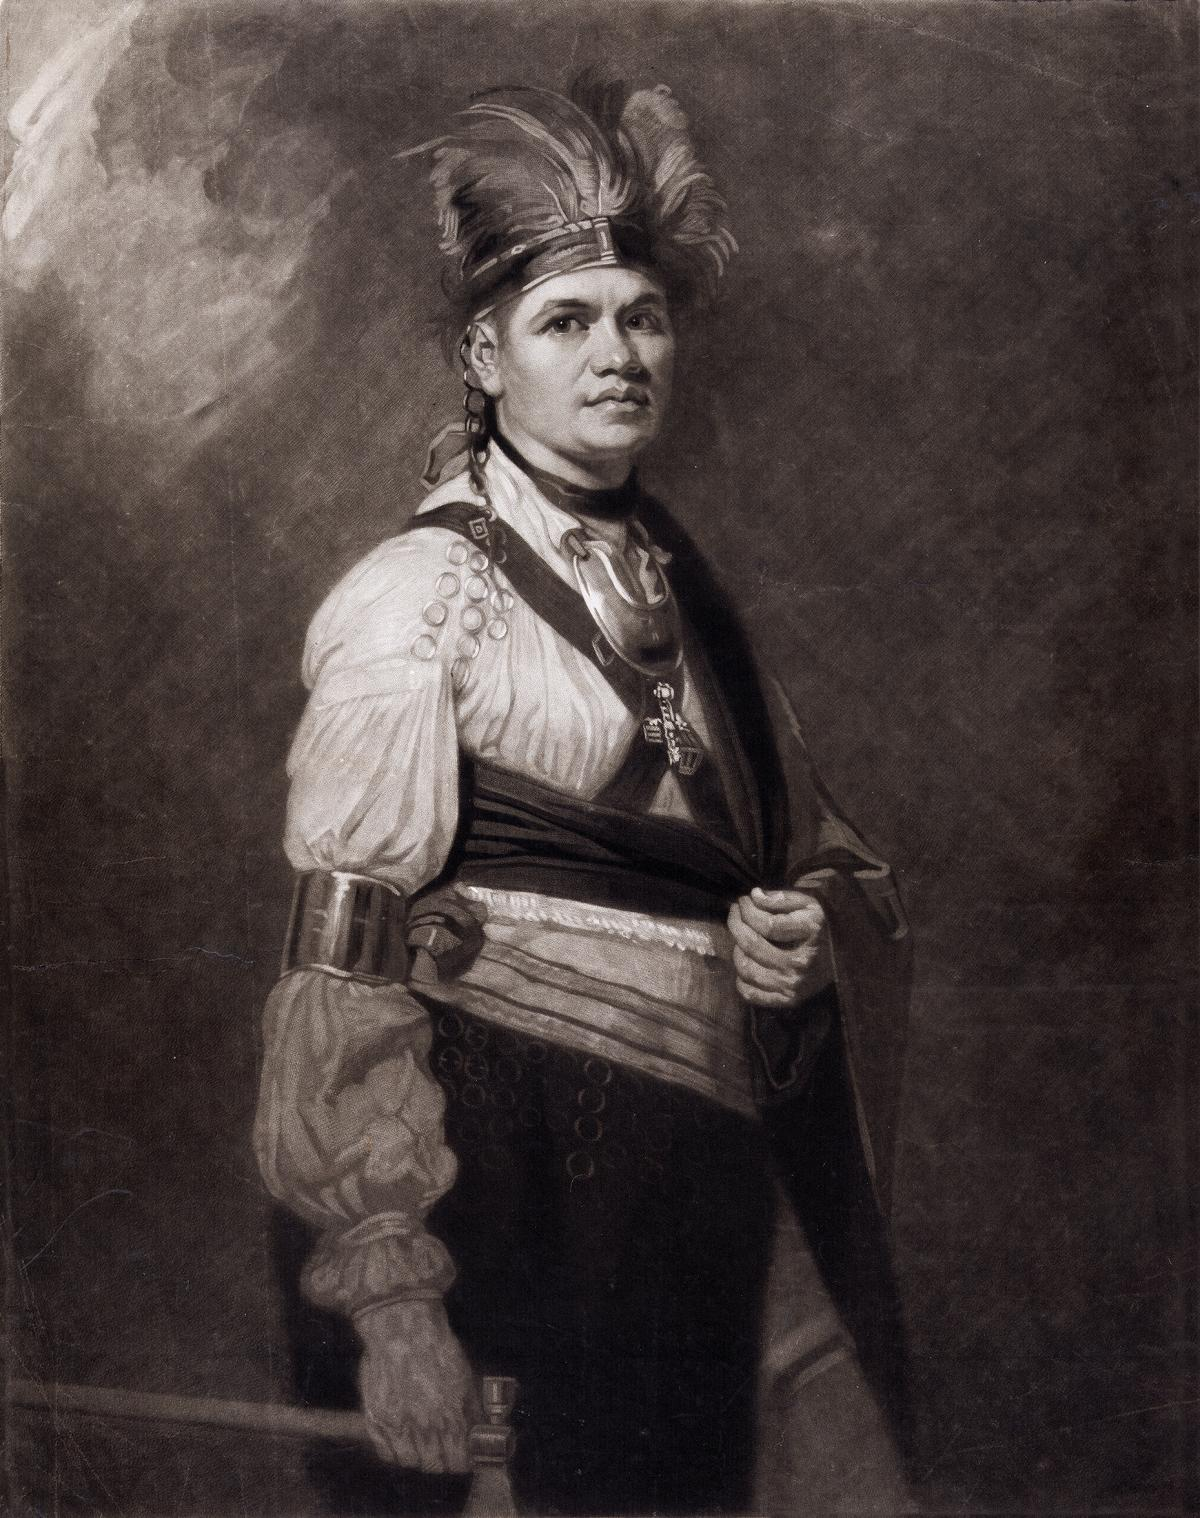 Joseph Brant, wearing a feathered Native American headdress and adornments, but also European-style shirt and trousers